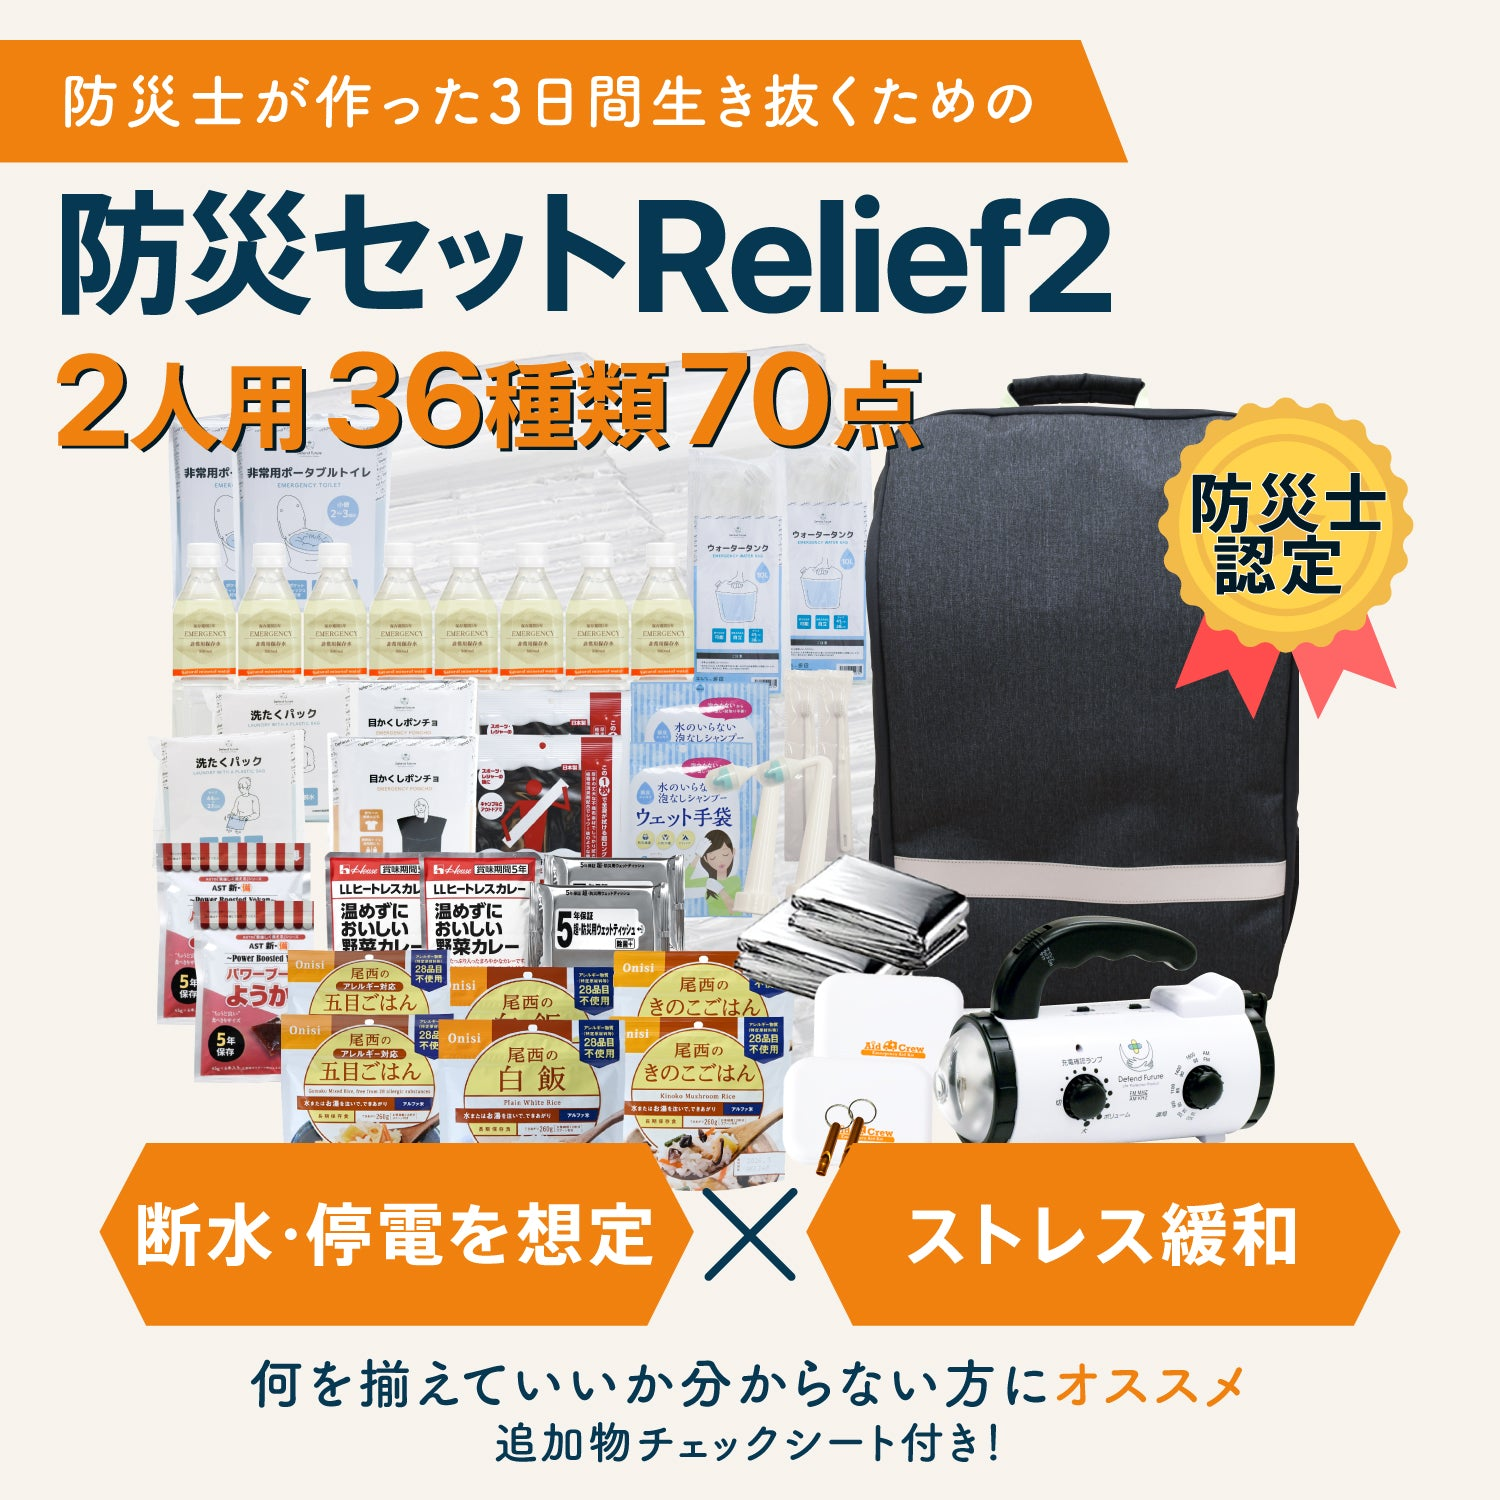 Defend Future 防災士監修 防災セット 2人用 Relief2